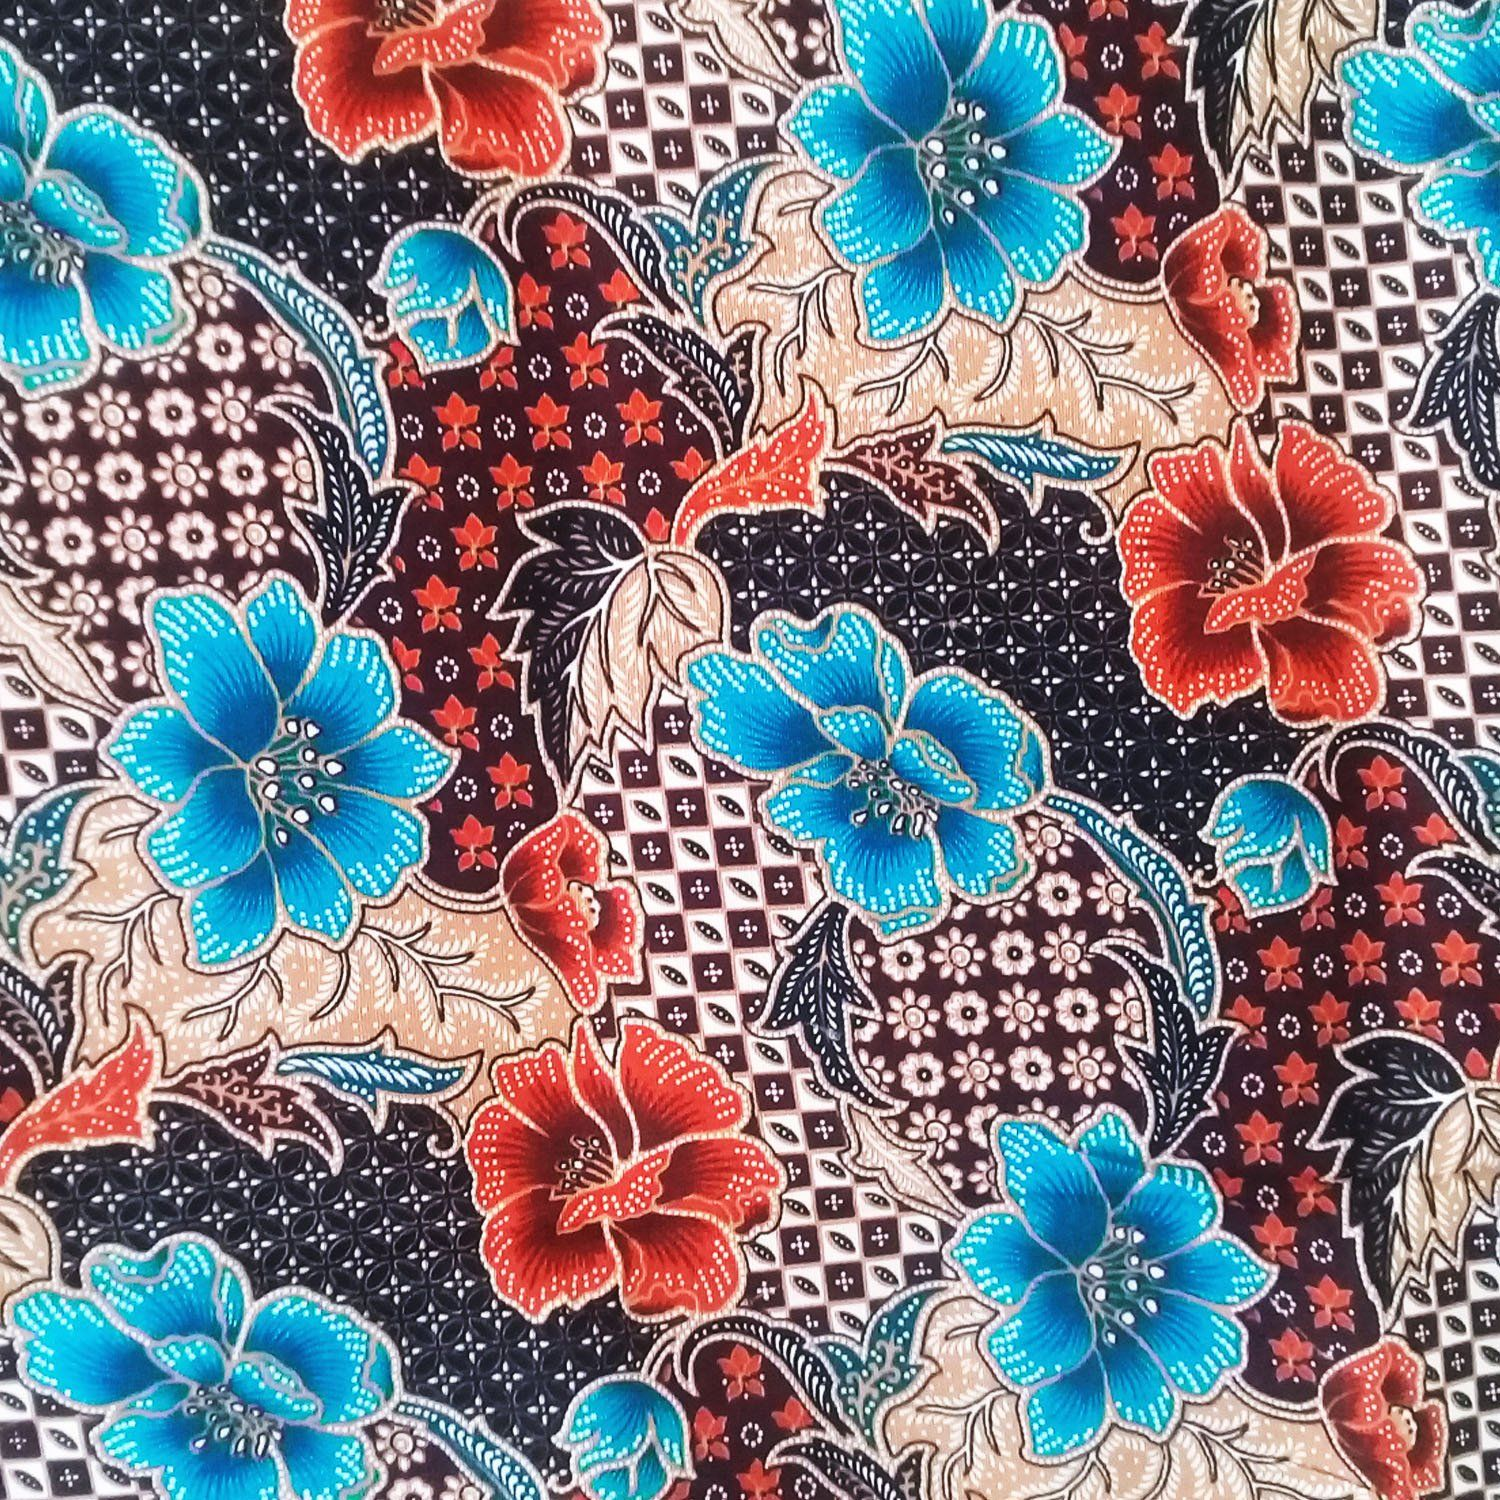 Thai Sarong,Thai Batik,batik Sarong Fabric,cotton 2 Yards